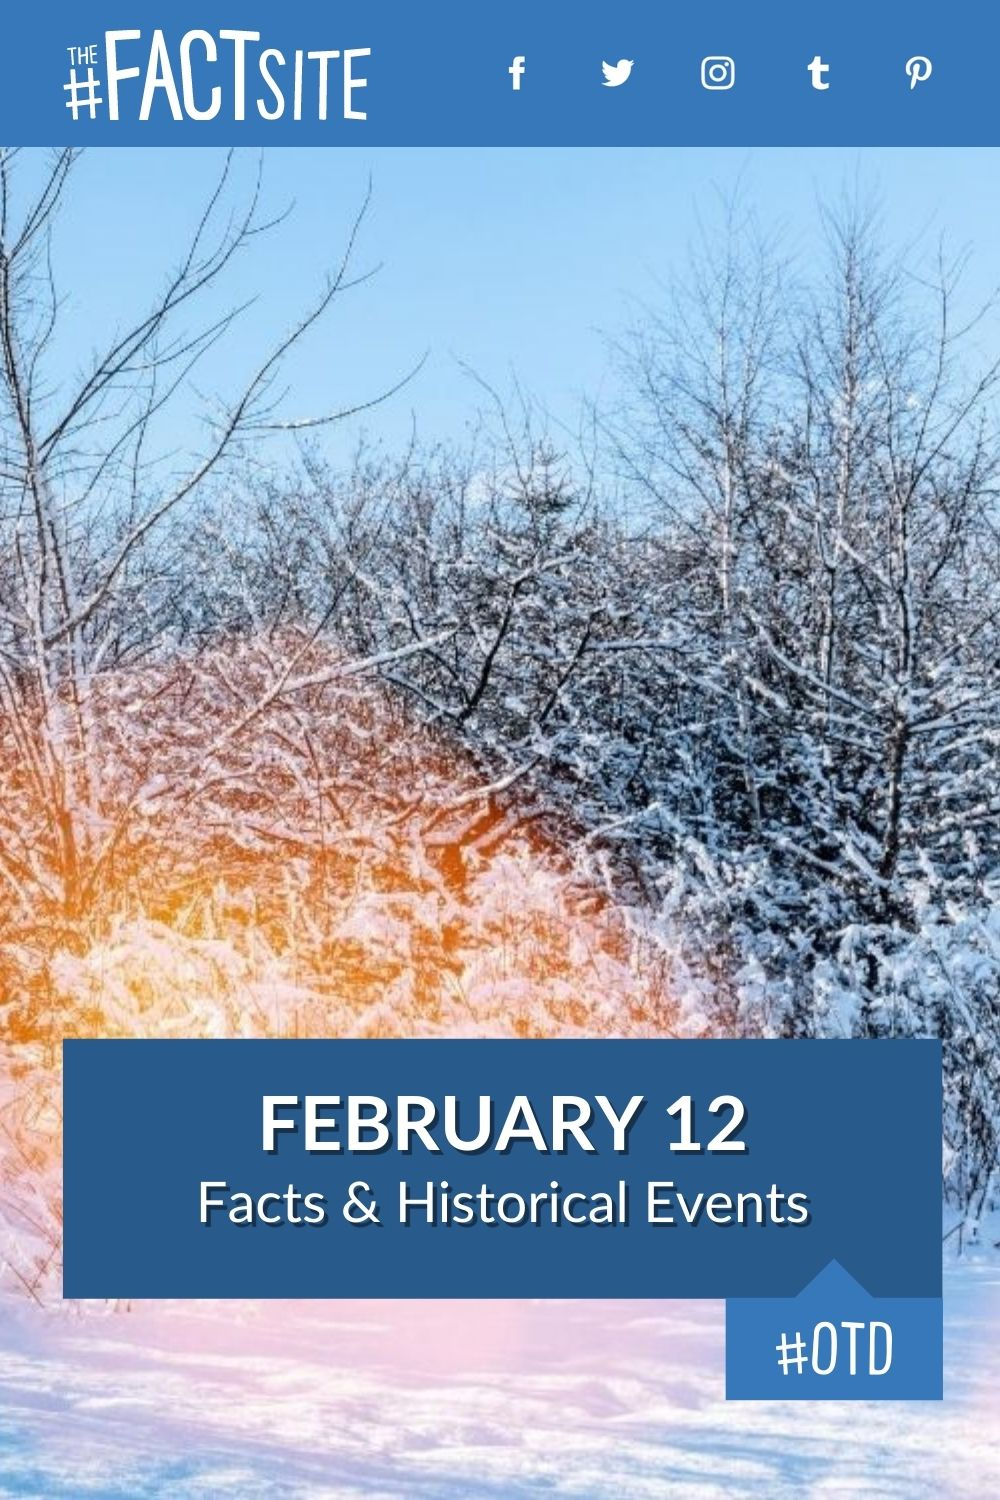 Facts & Historic Events That Happened on February 12